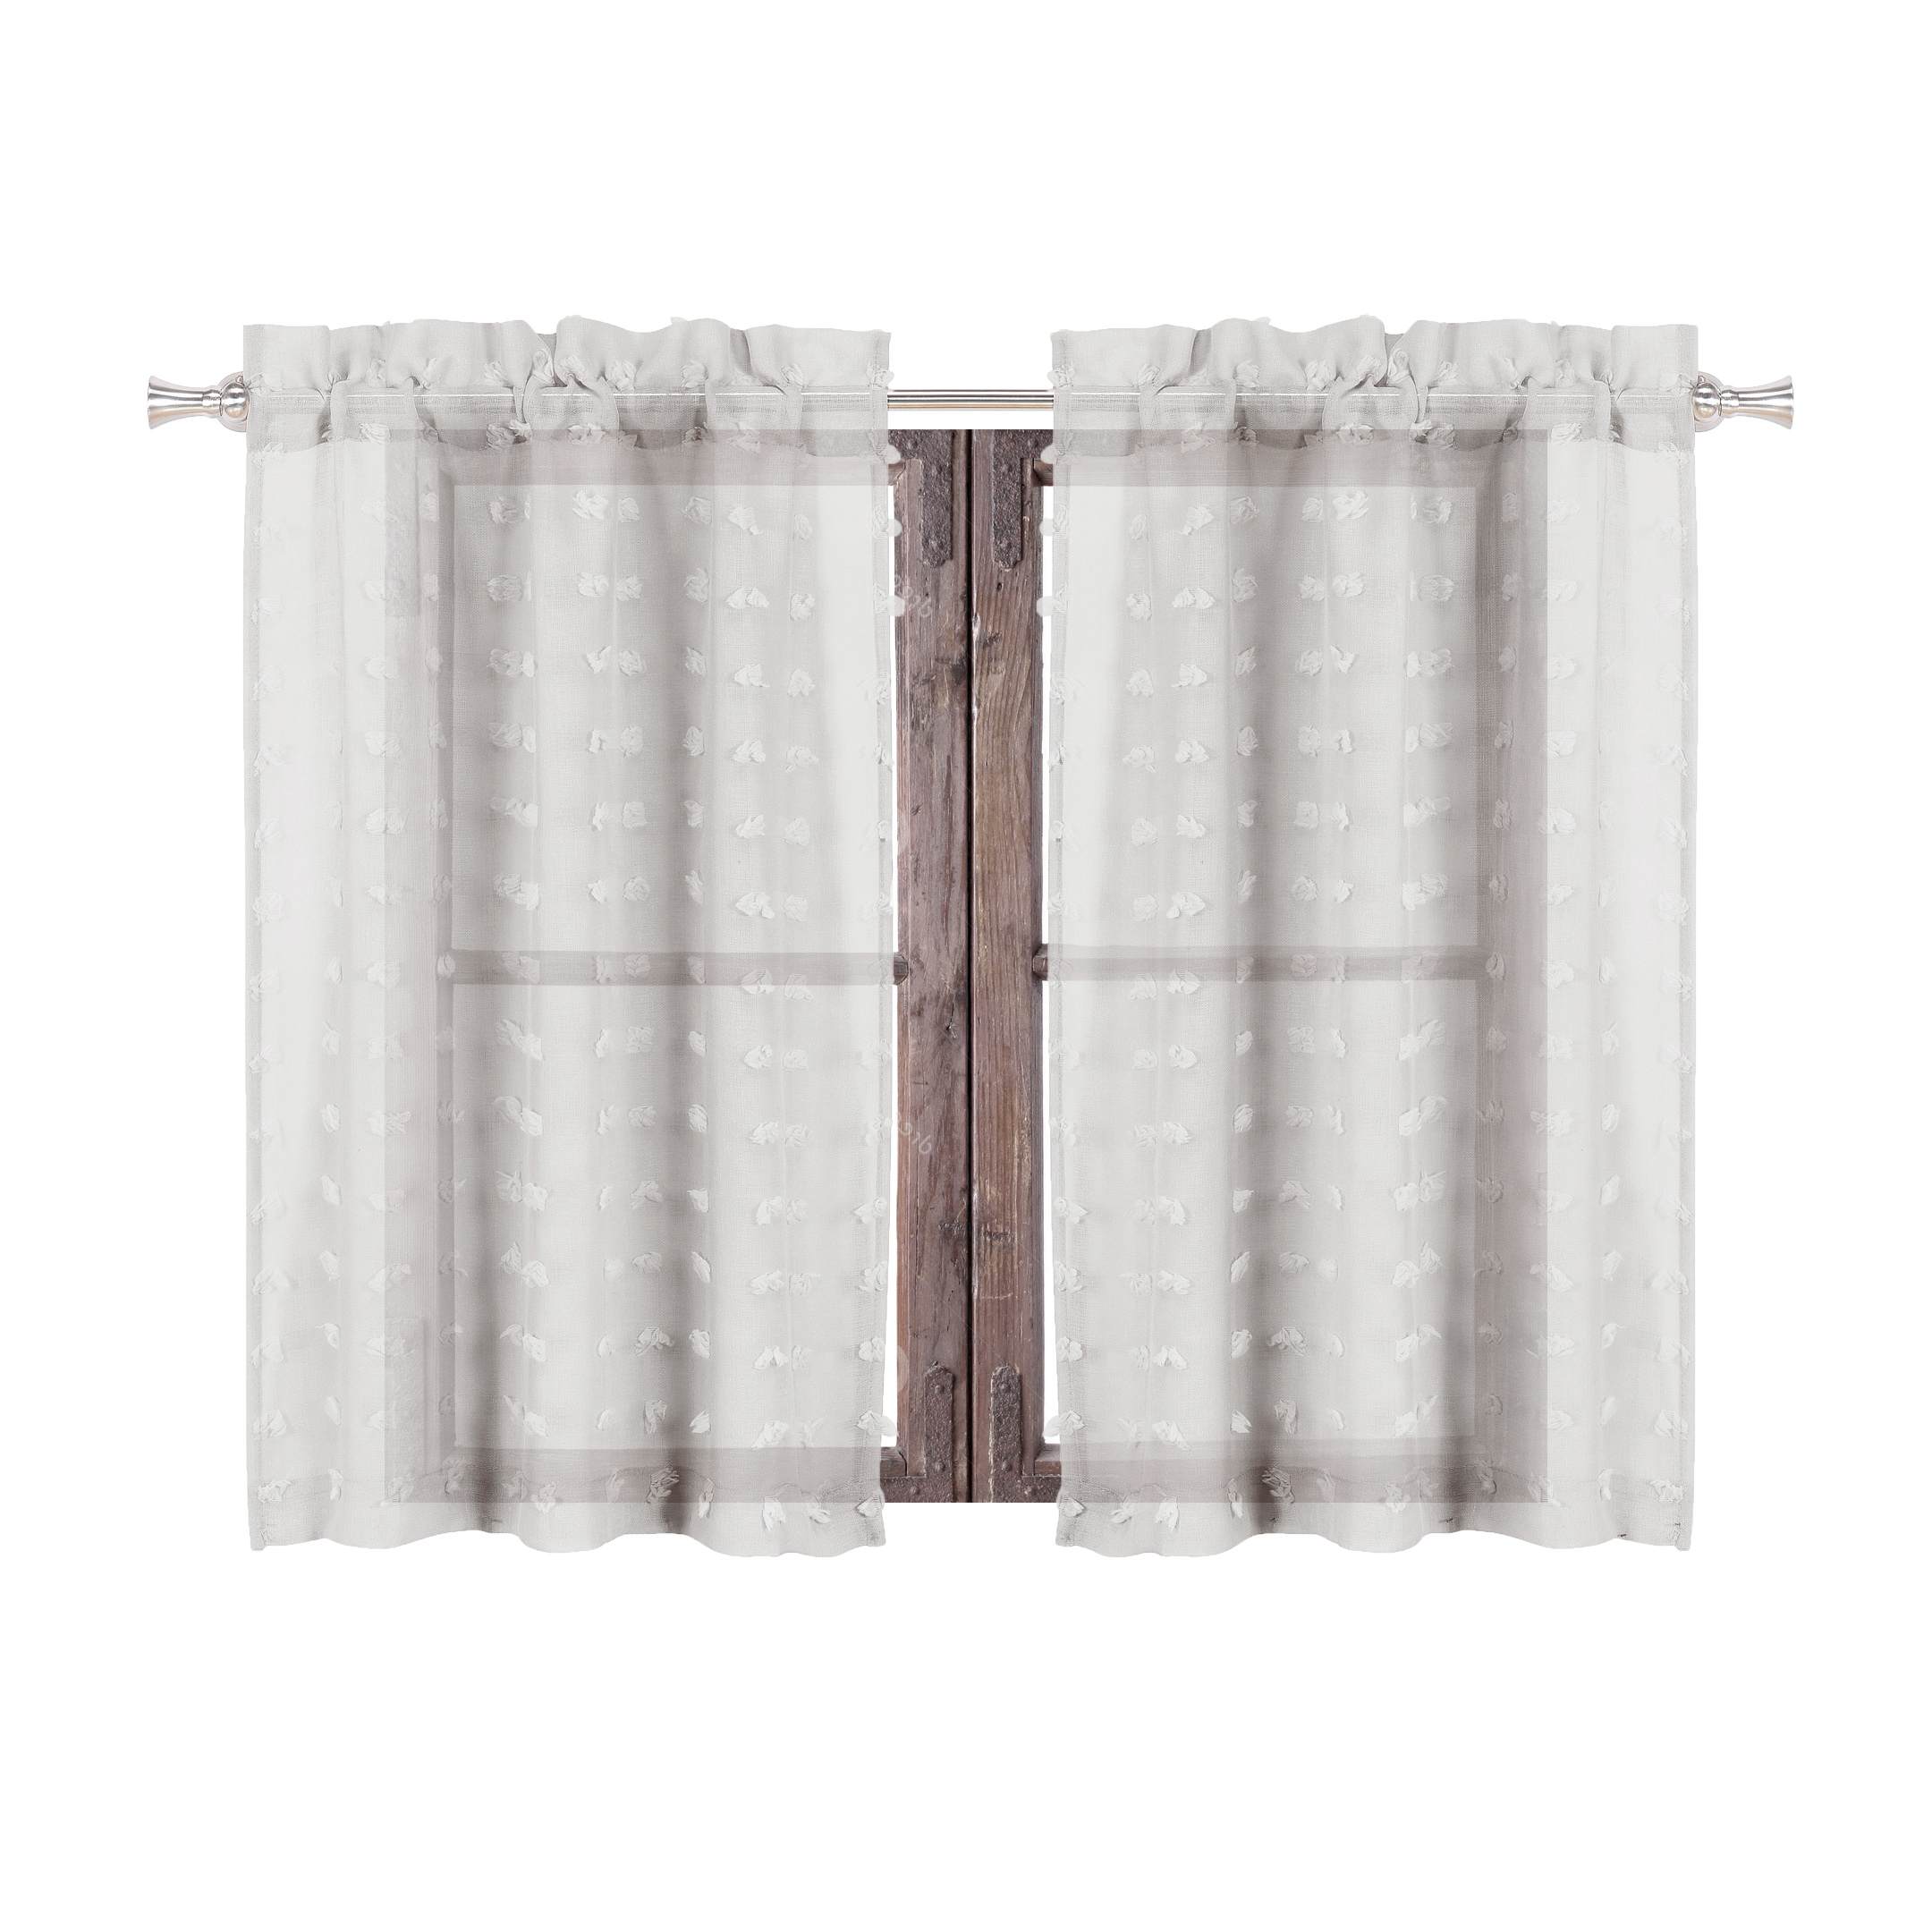 Sheer 2 Piece Silver Café/tier Curtain Set: 3 D Soft Tufts Pertaining To Widely Used Chic Sheer Voile Vertical Ruffled Window Curtain Tiers (View 20 of 20)